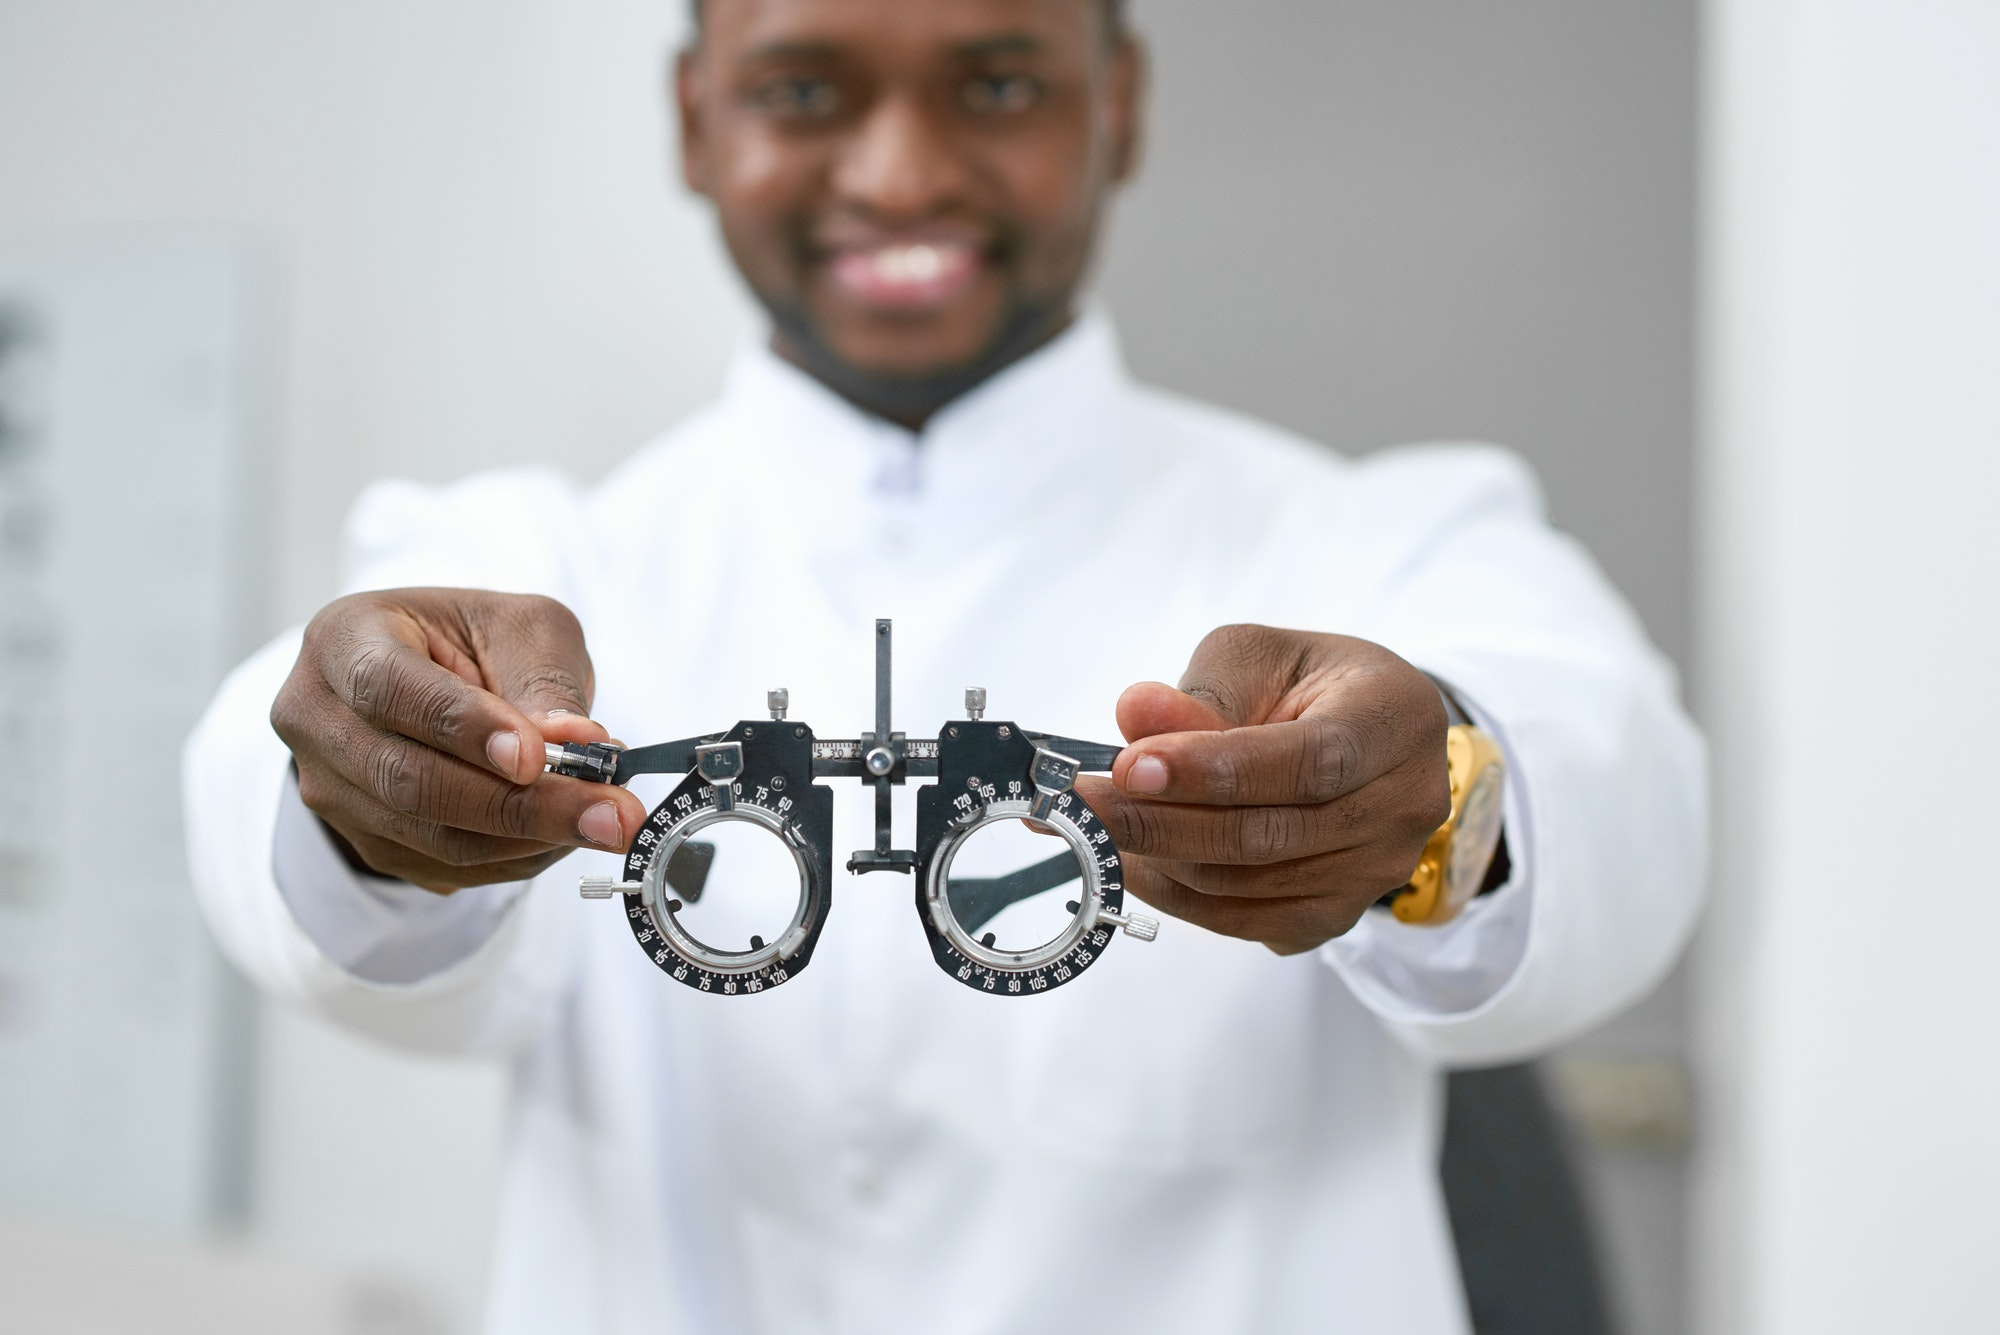 Smiling man giving medical lenses to try on